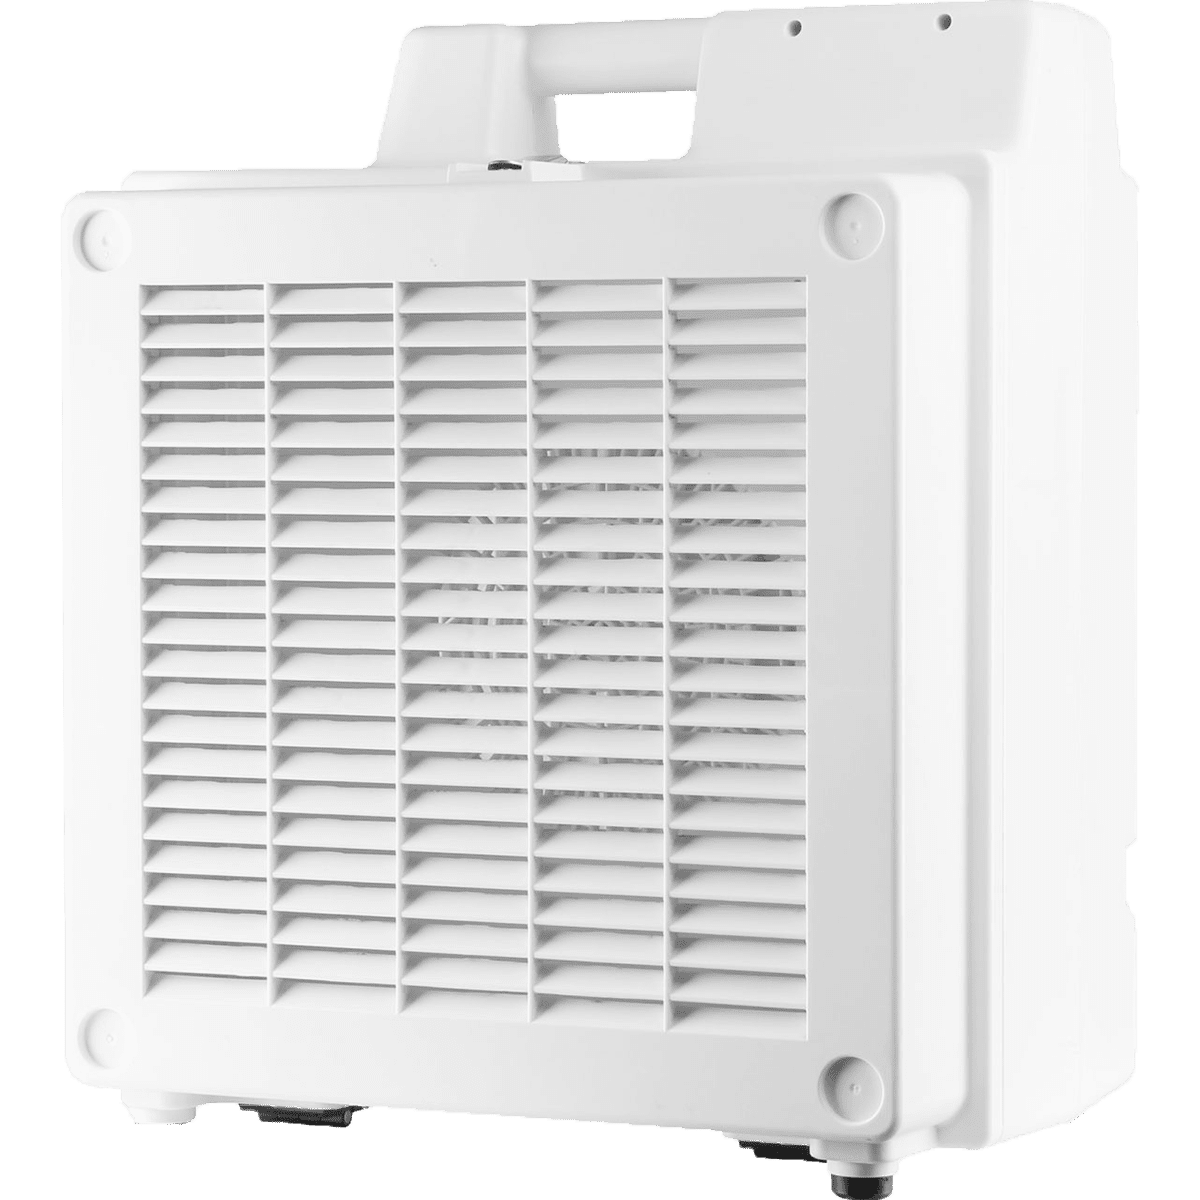 XPOWER X-3780 Professional 4-Stage HEPA Air Scrubber